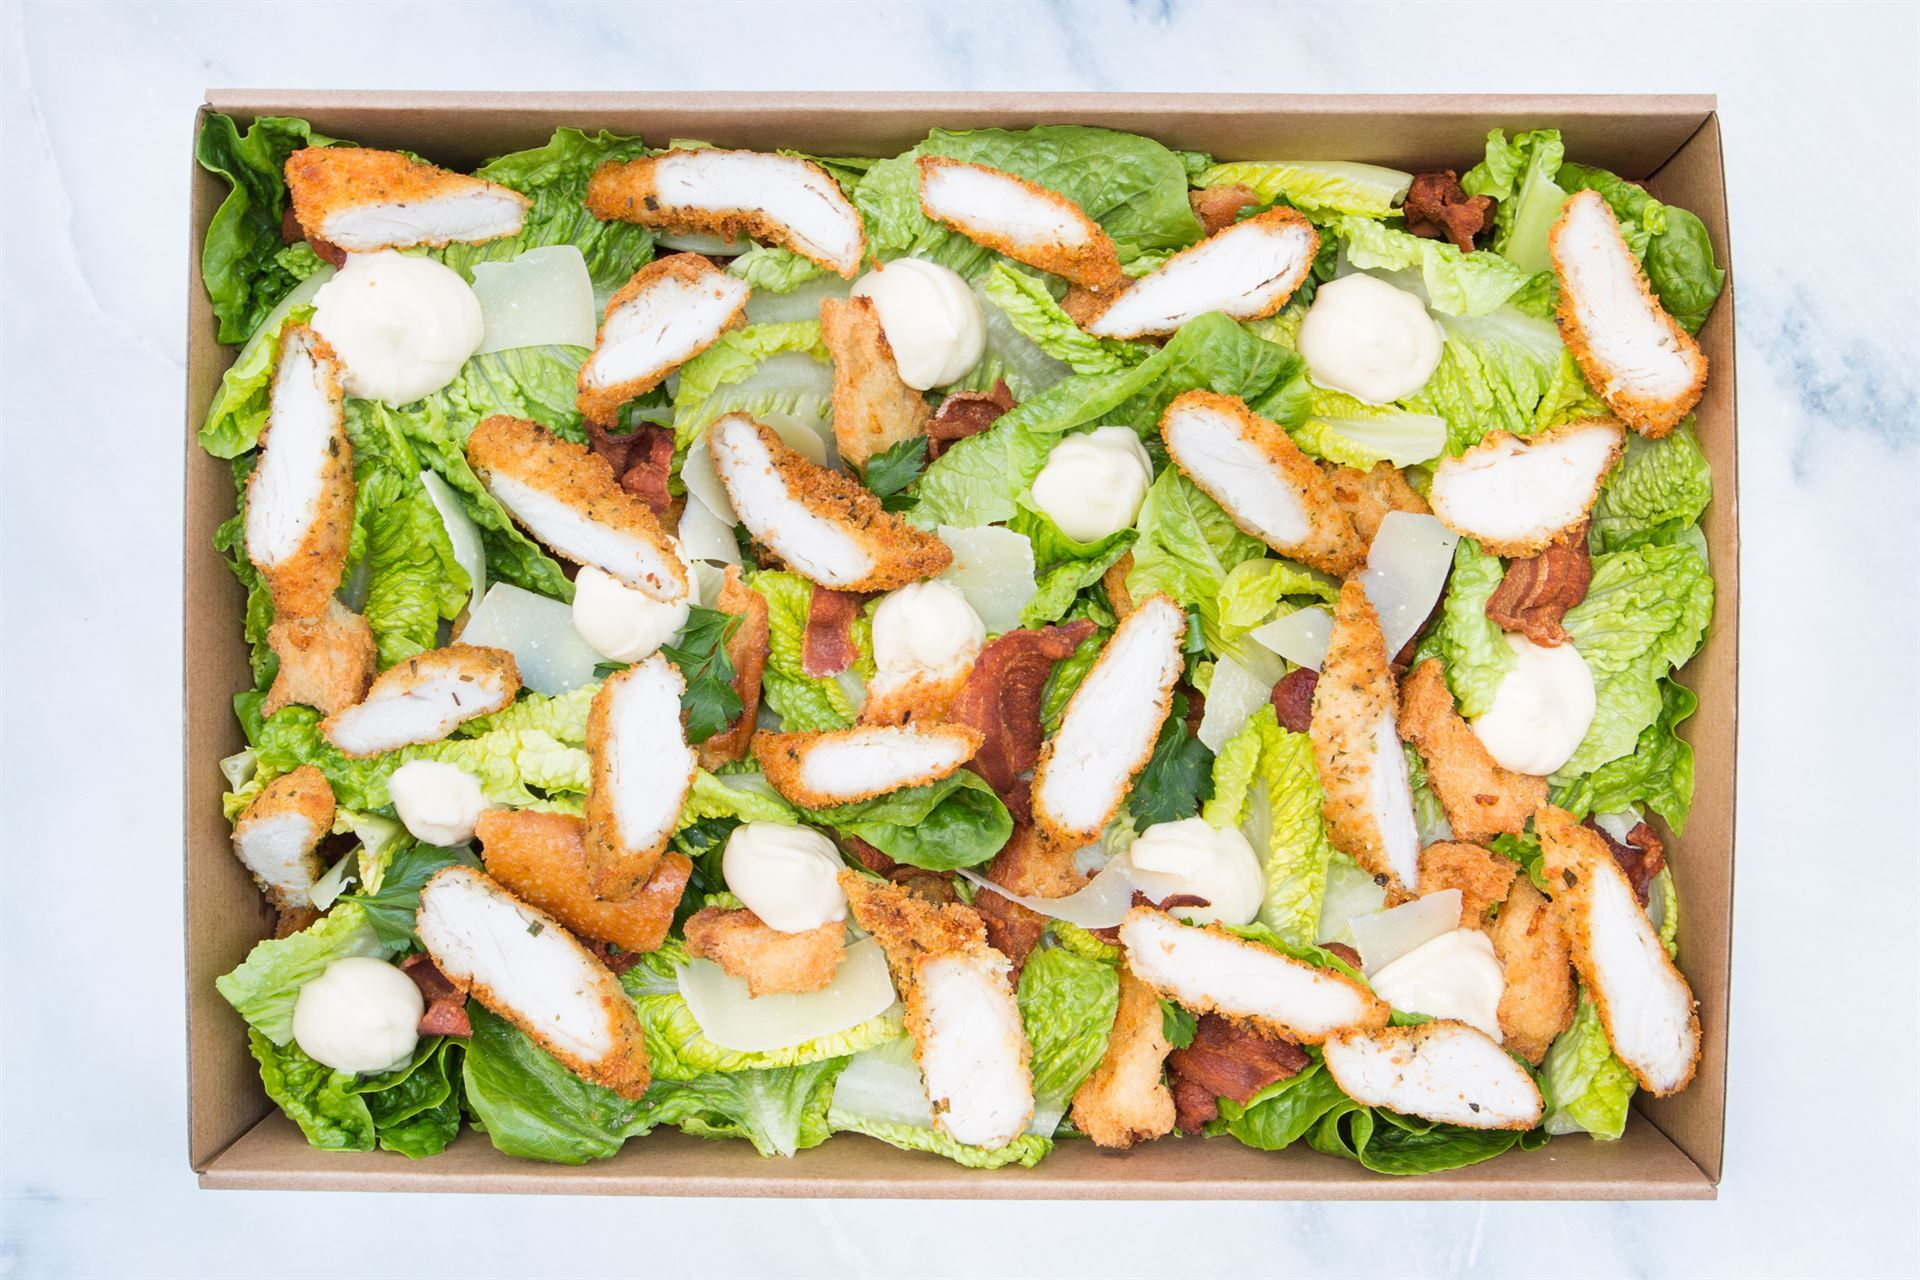 Crispy crumbed chicken caesar salad: cos hearts, sourdough croutons, bacon, egg, & parmesan